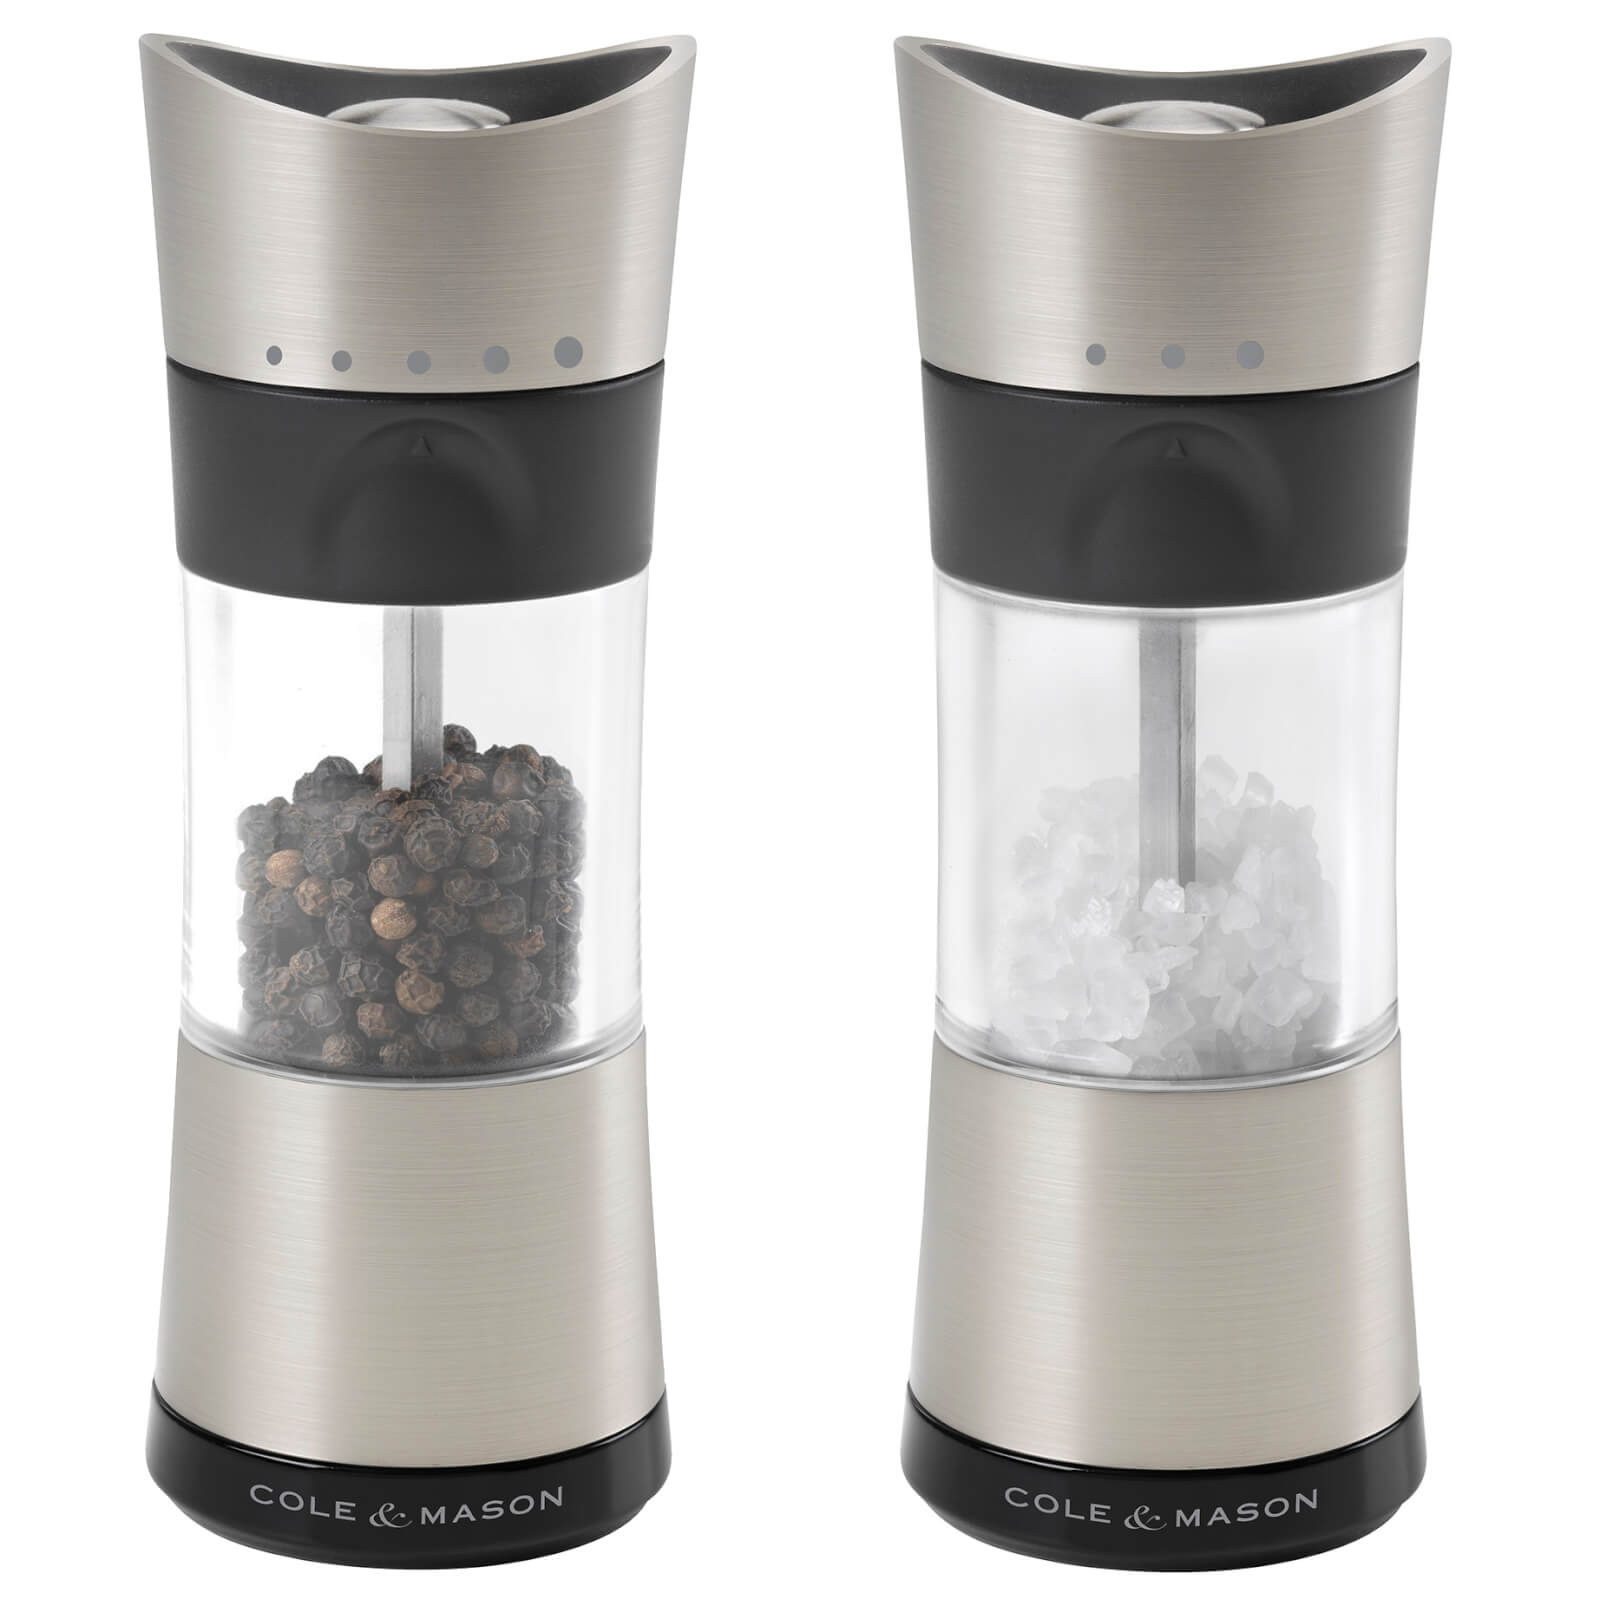 Cole and Mason Horsham Salt and Pepper Mill Set - Chrome